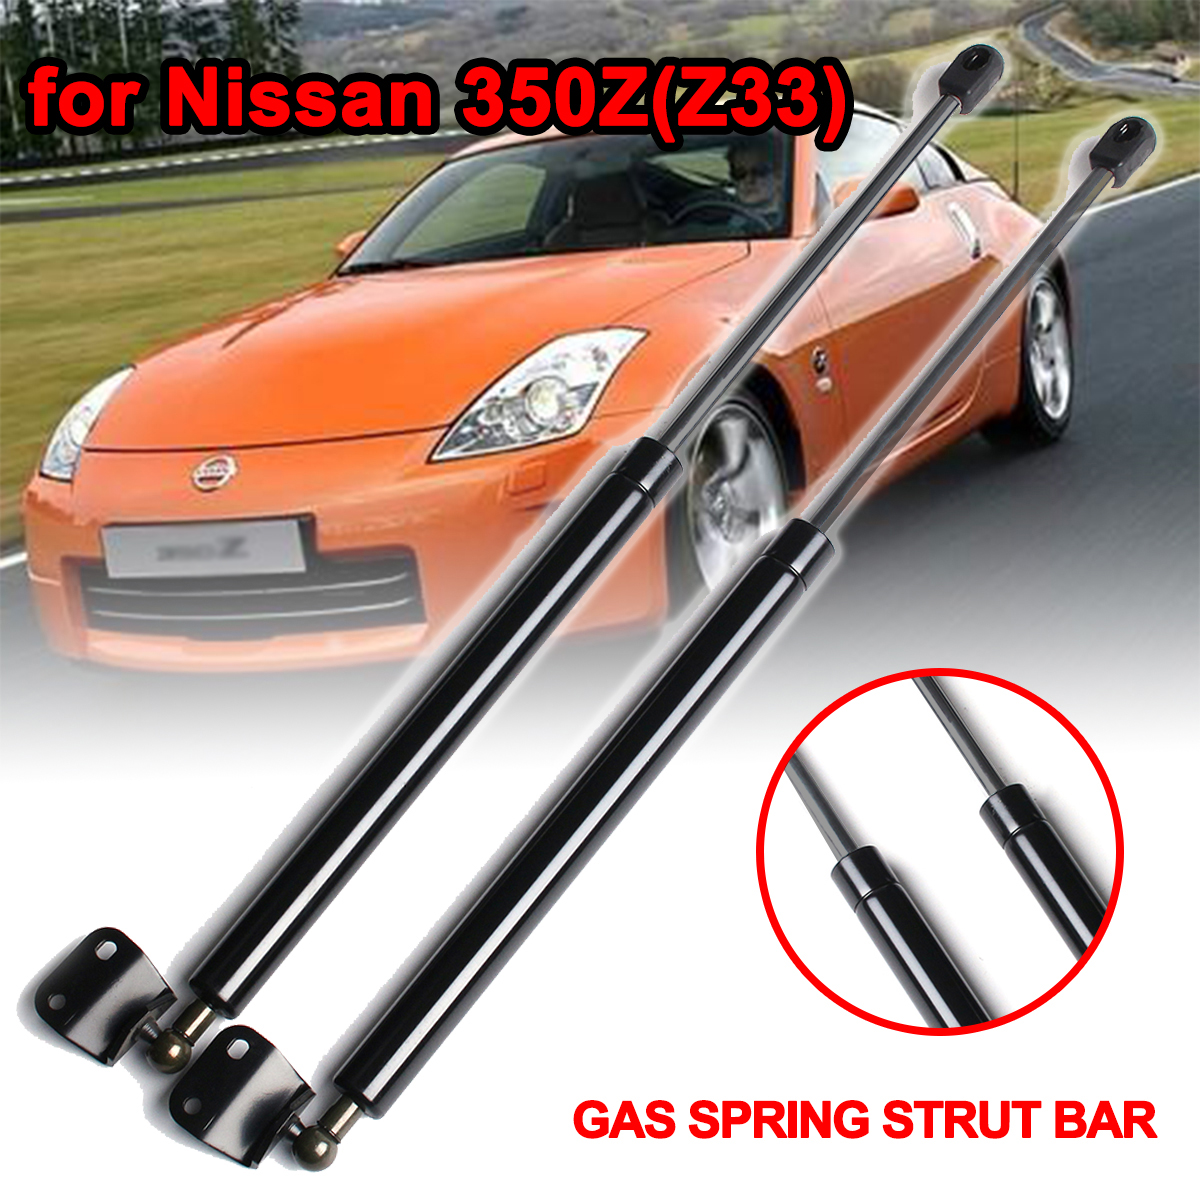 2 x Car Rear Tailgate Gas Strut Bars Trunk Support With Spoiler Car Accessories Strut Bars GS90453 For Nissan 350Z Z33 2003 2008|Strut Bars| |  - title=